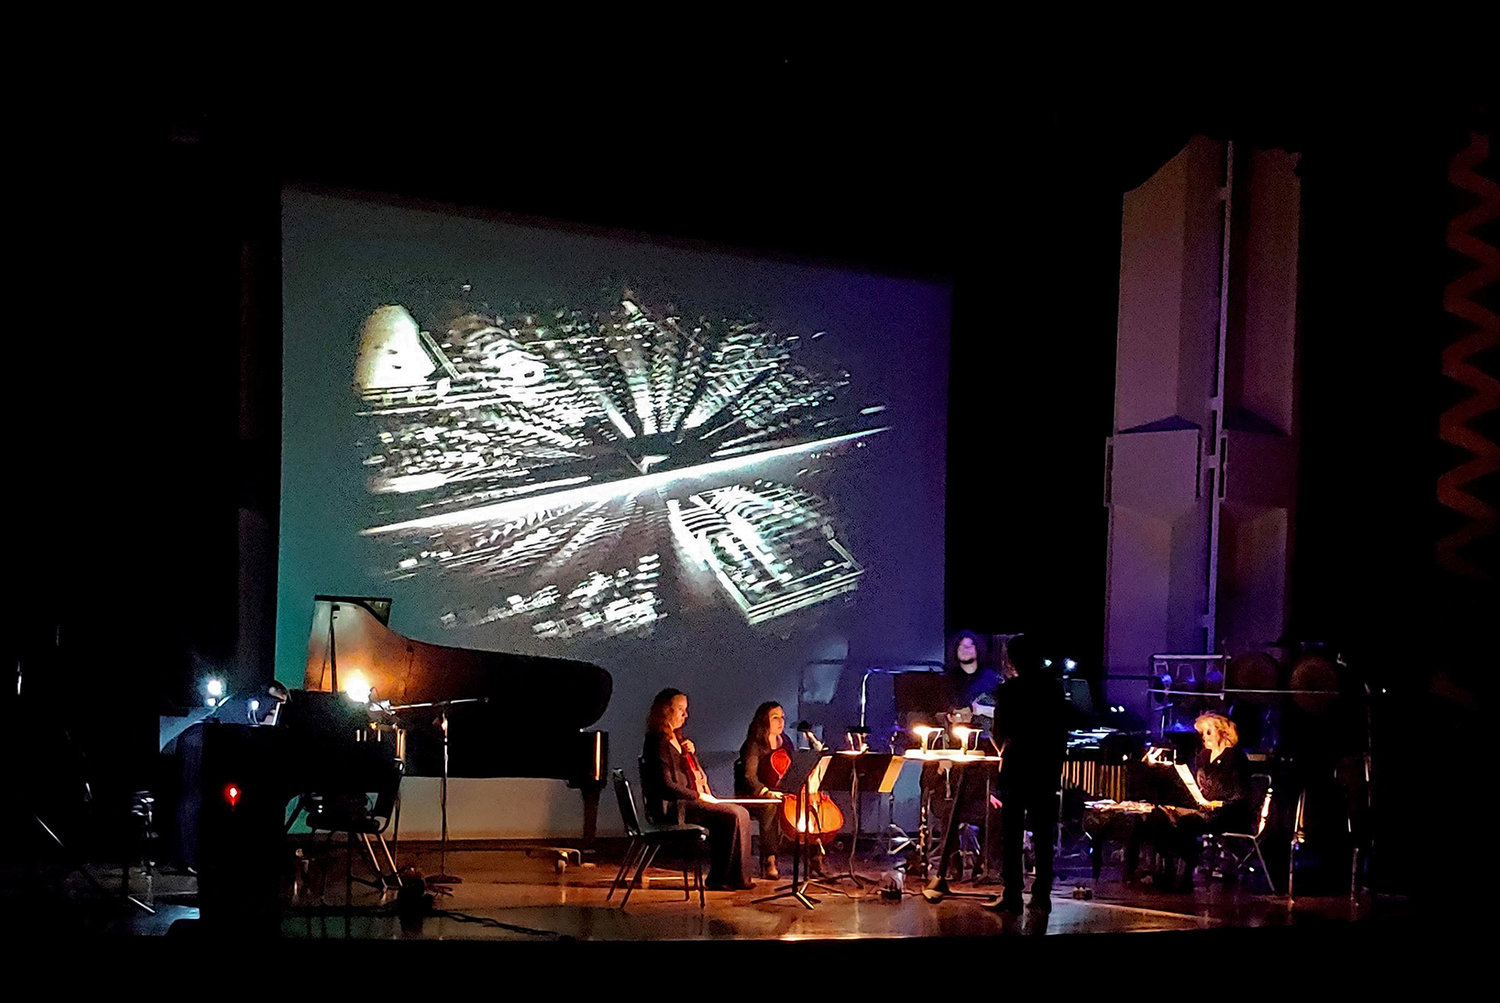 September 26: Ensemble/Parallax performs at